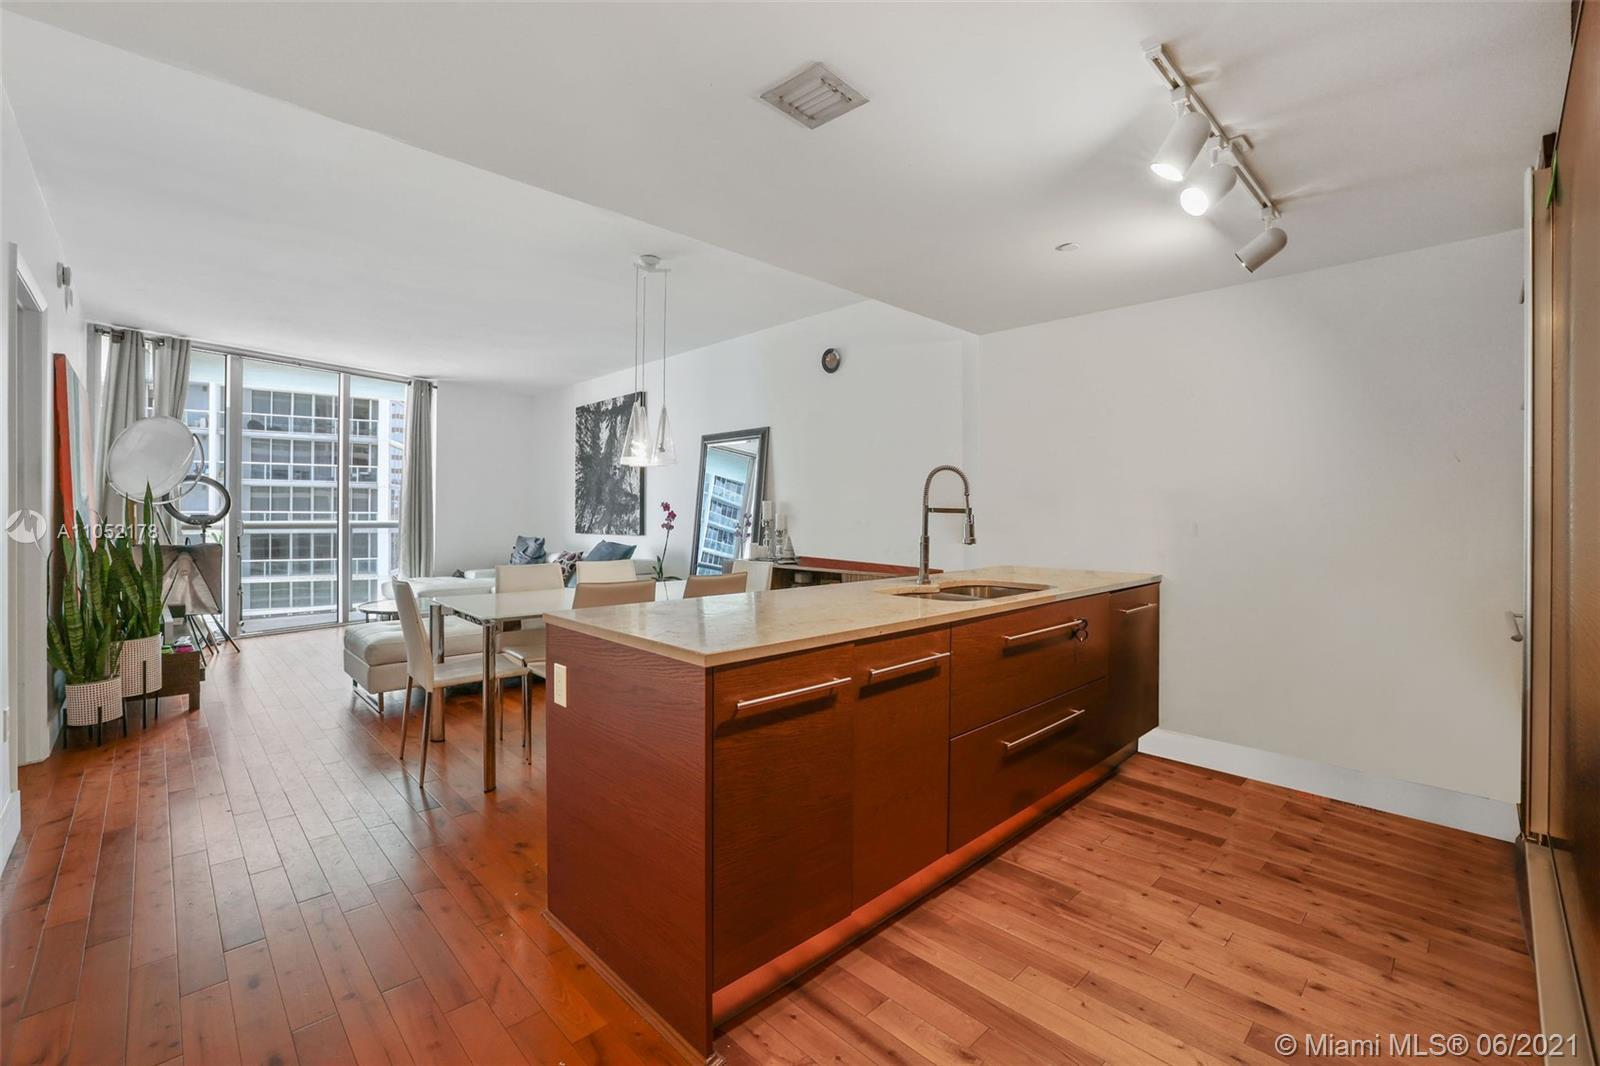 Large 1 Bedroom Floor Plan in Icon Tower 1 with gorgeous wood floors throughout. Enjoy stunning bay